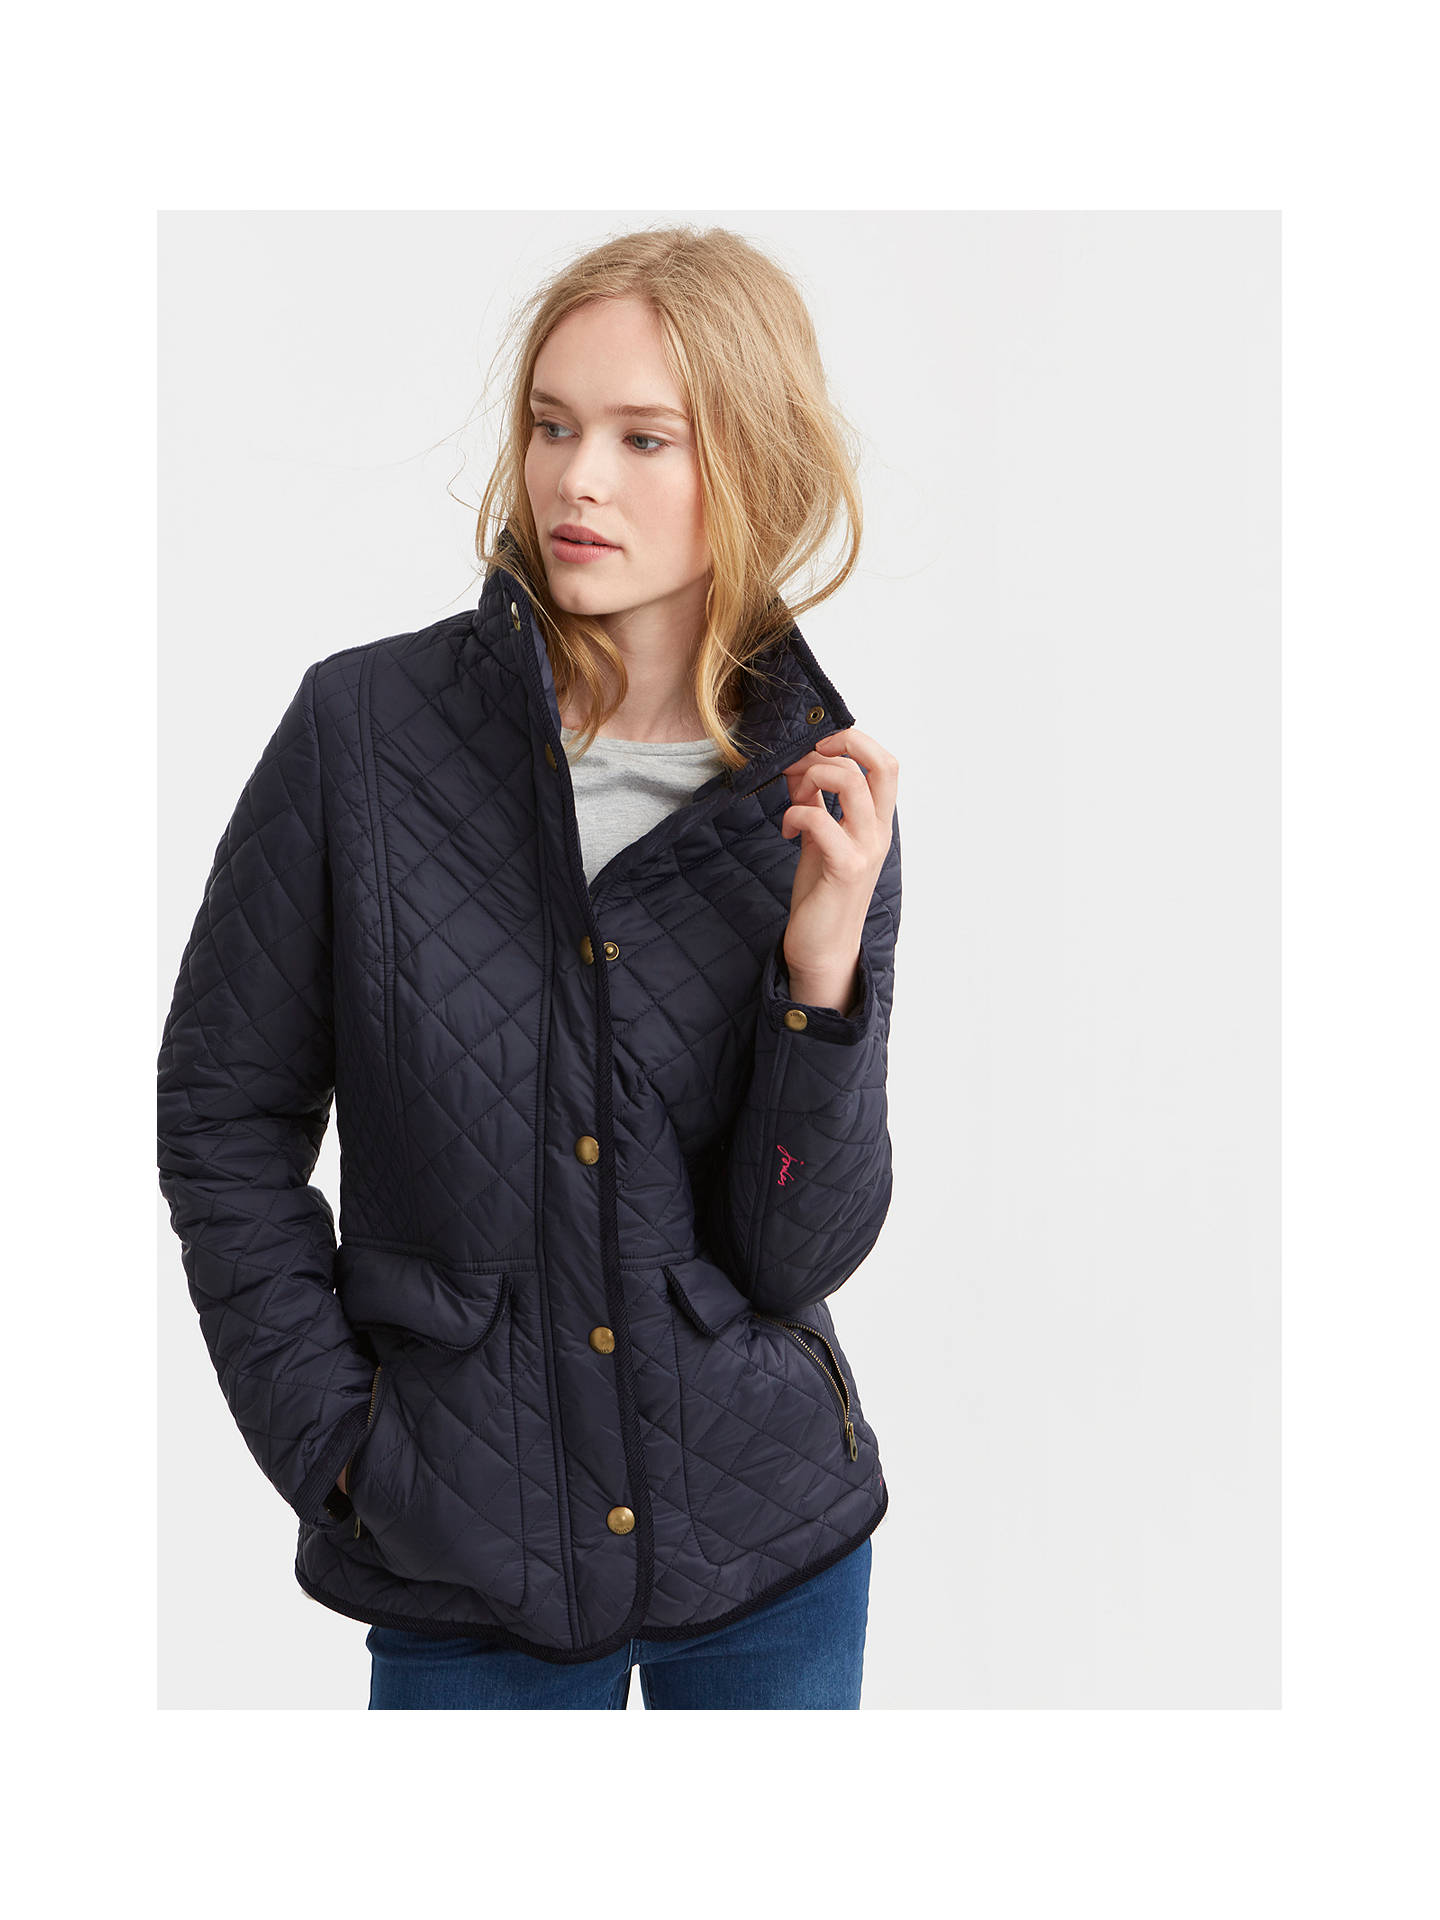 ec4b041a3 Joules Newdale Quilted Jacket, Marine Navy at John Lewis & Partners